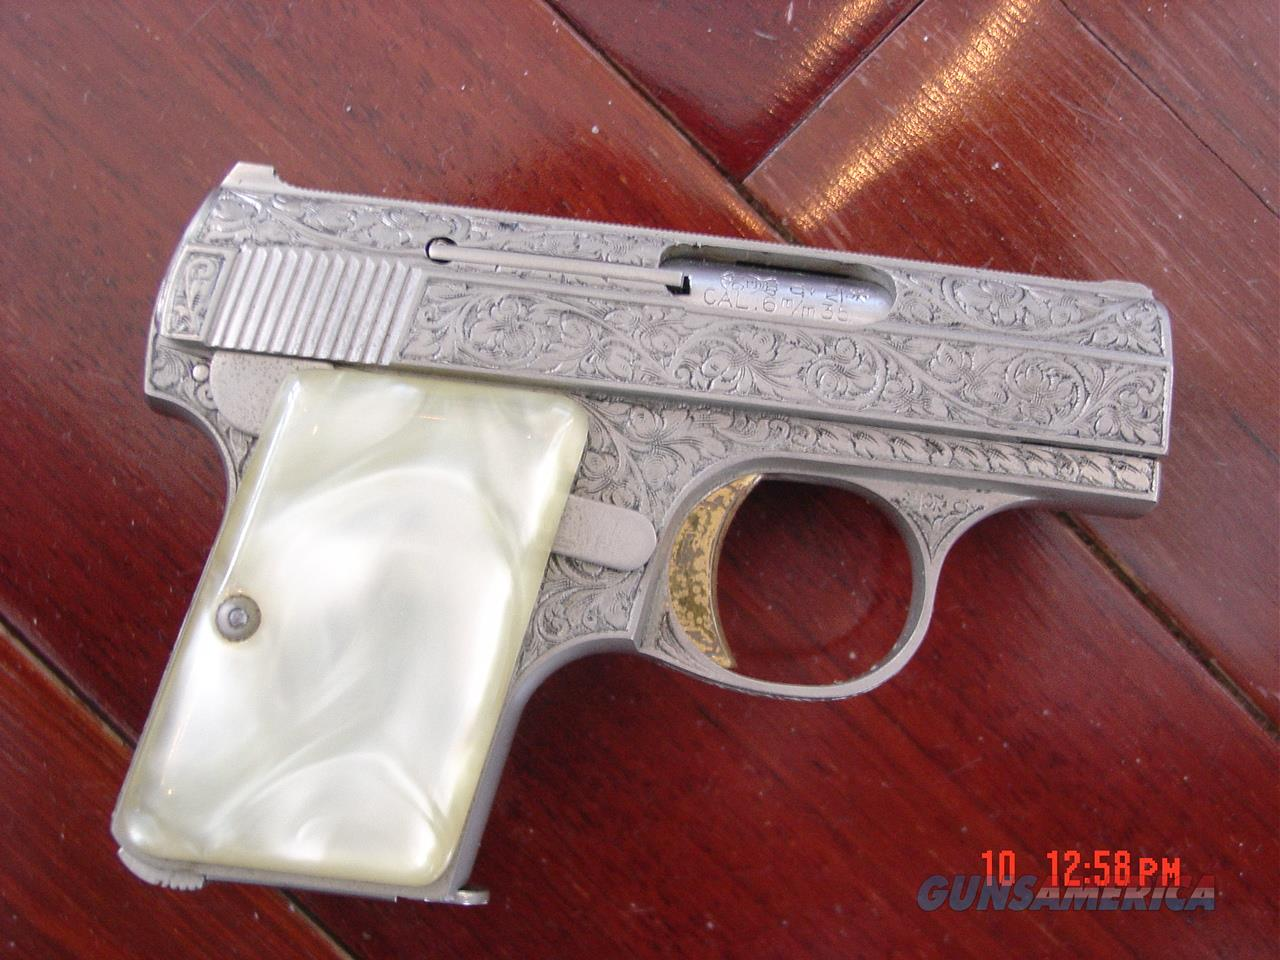 Browning Baby Renaissance 25ACP, factory engraved, French gray finish, Pearlite grips, made 1960's,getting rare now. Awesome engraving !!  Guns > Pistols > Browning Pistols > Baby Browning